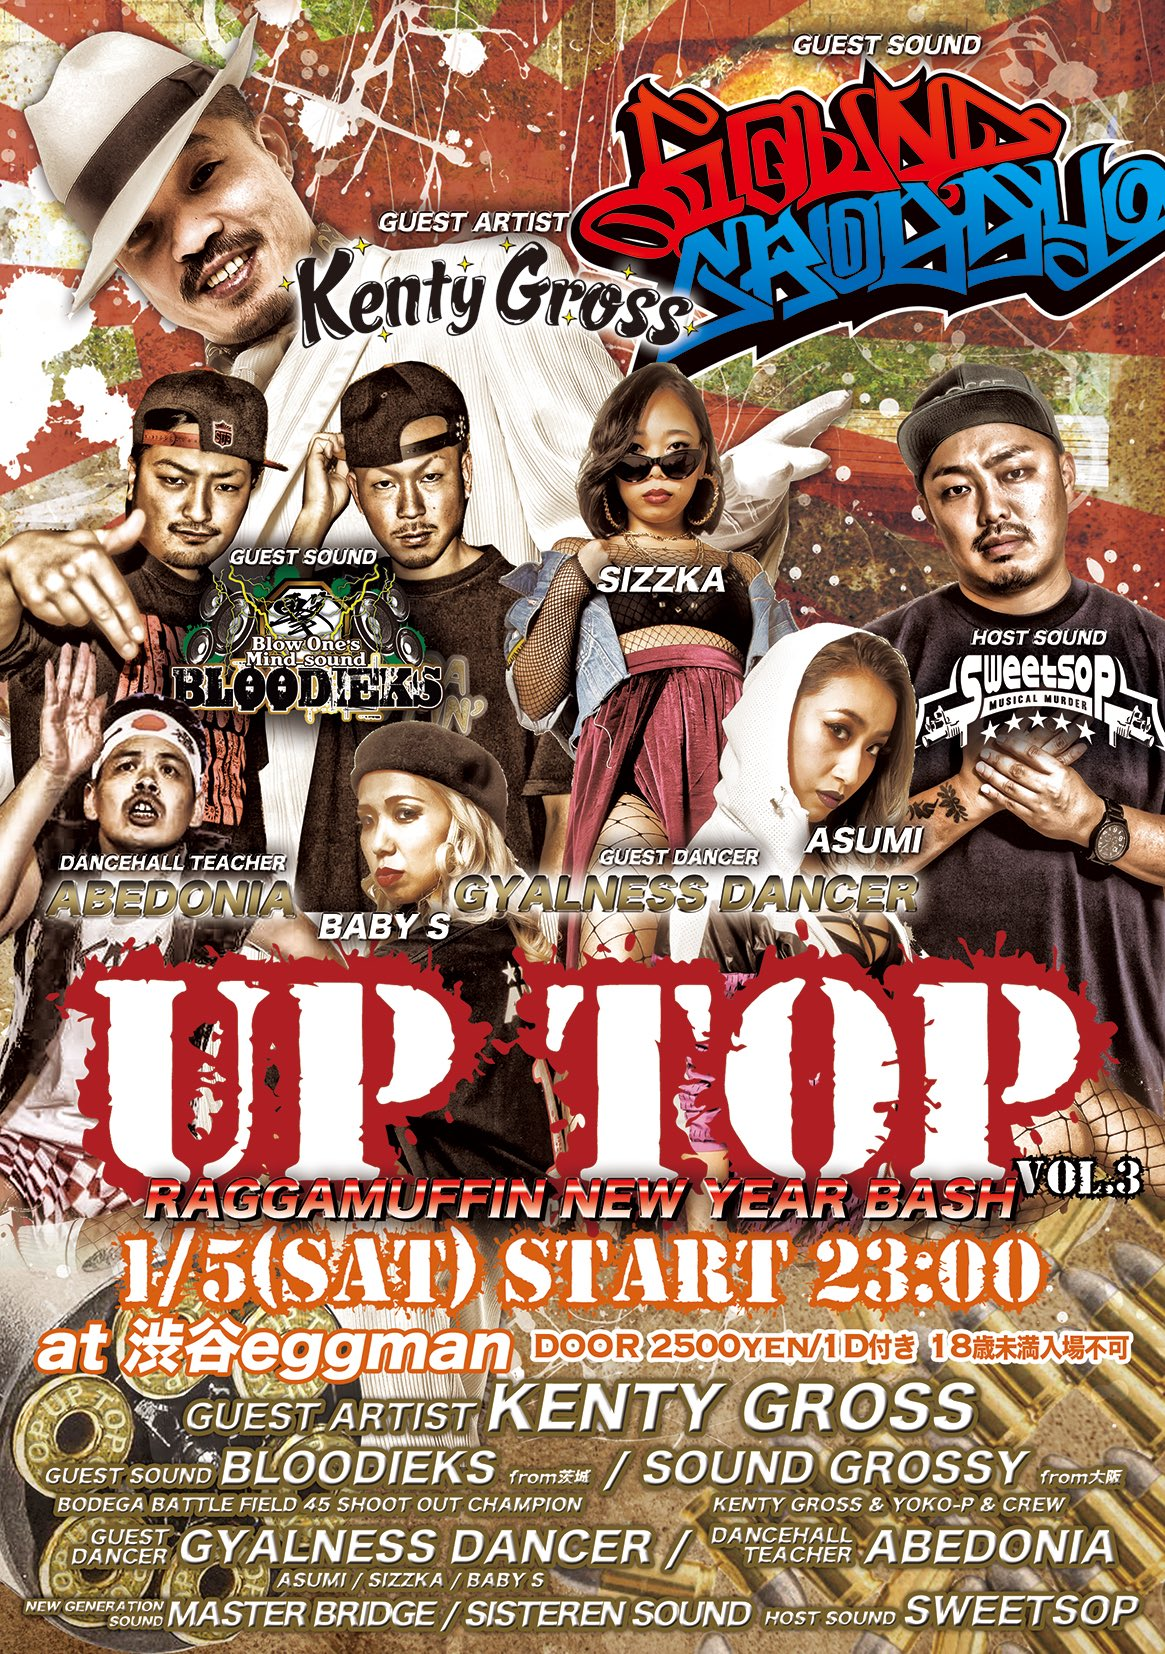 UP TOP vol.3 RAGGAMUFFIN NEW YEAR BASH